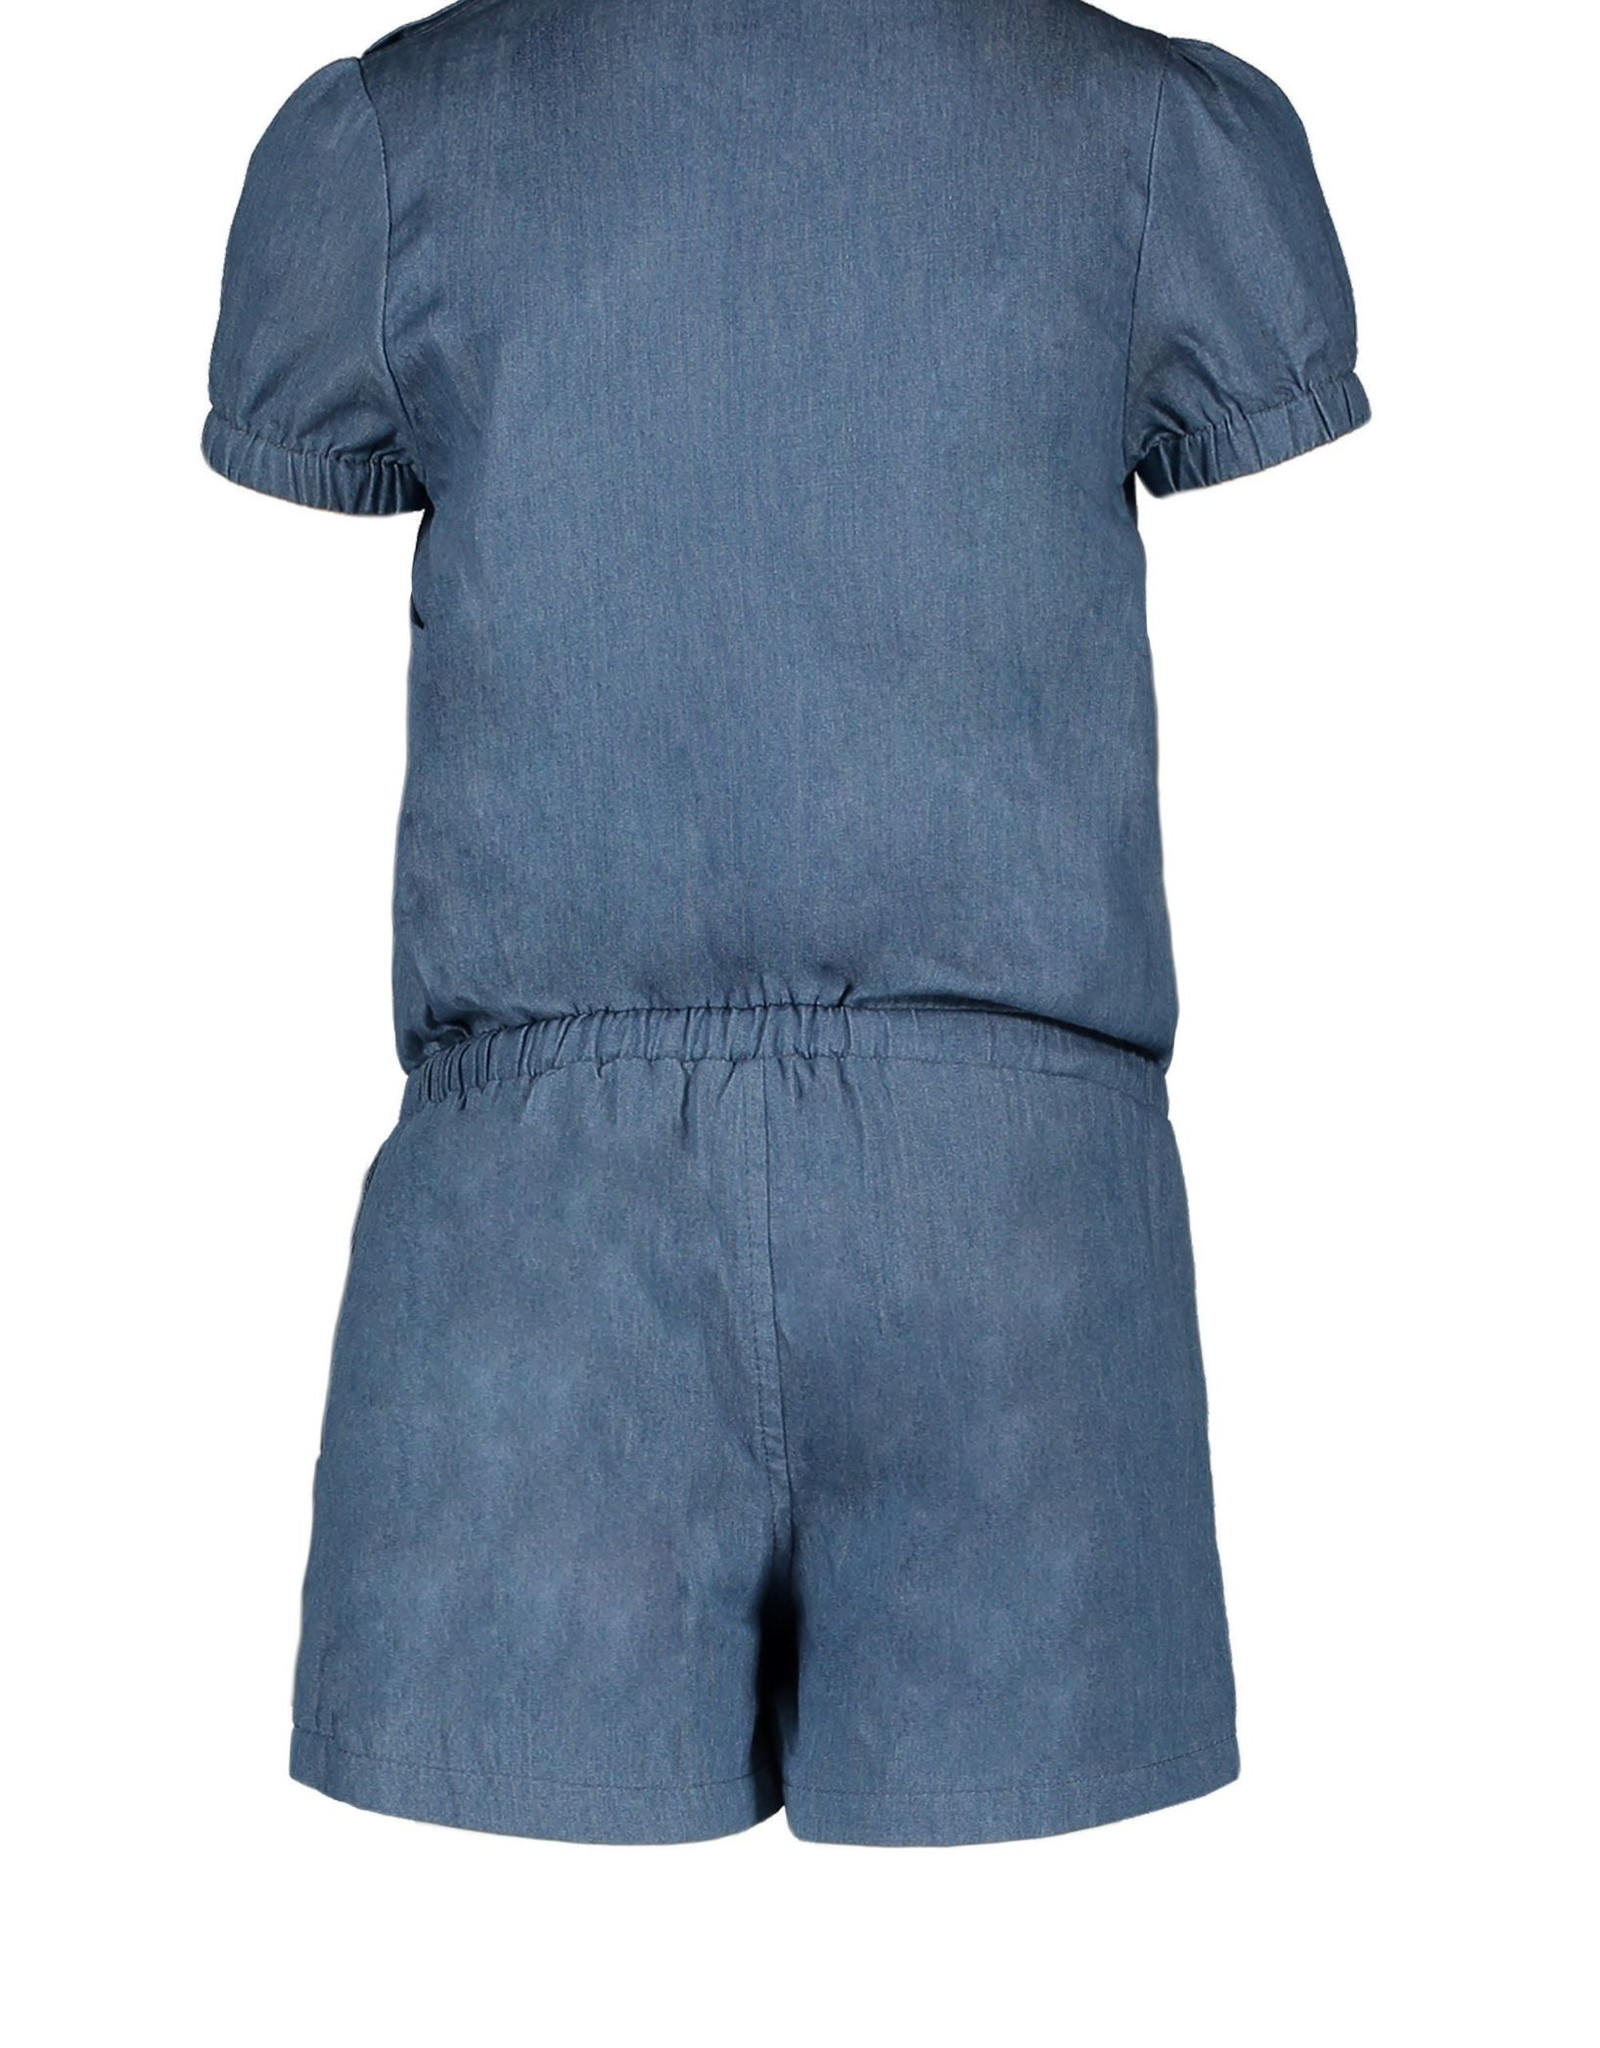 Moodstreet Moodstreet playsuit 5684 soft blue